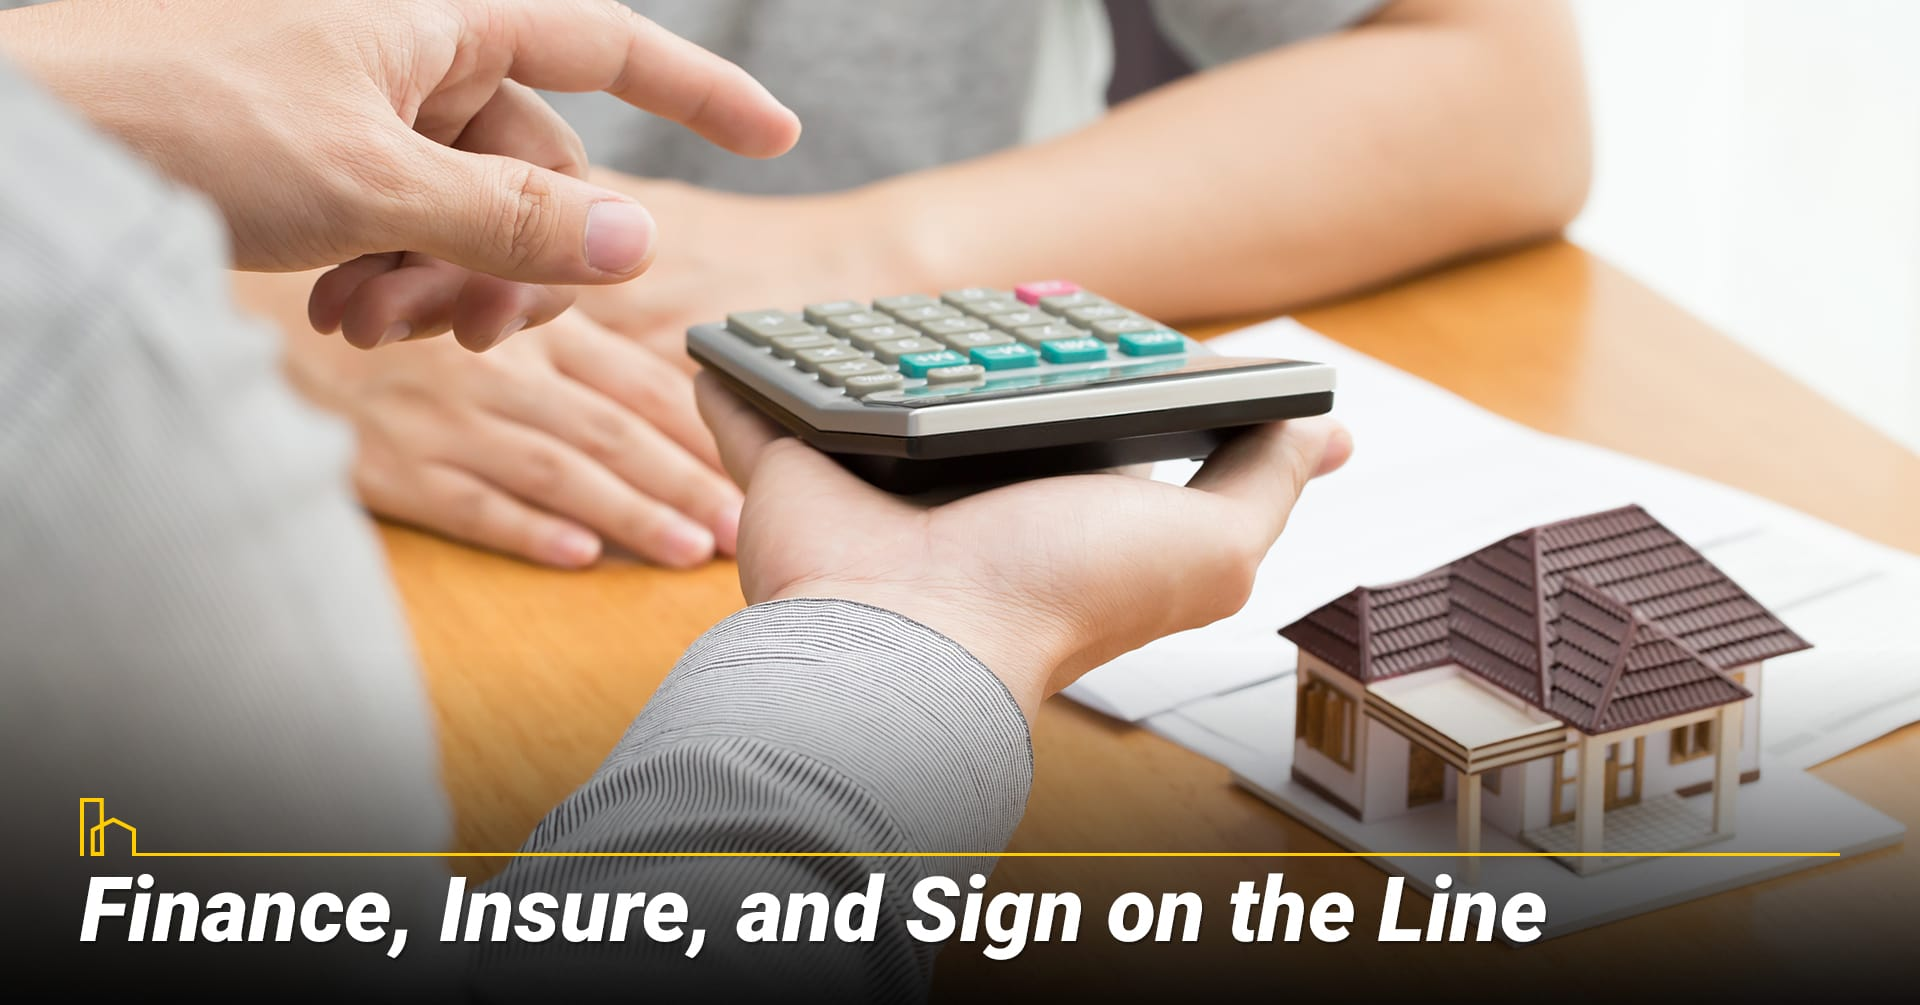 Finance, Insure and Sign on the Line, get through the final steps